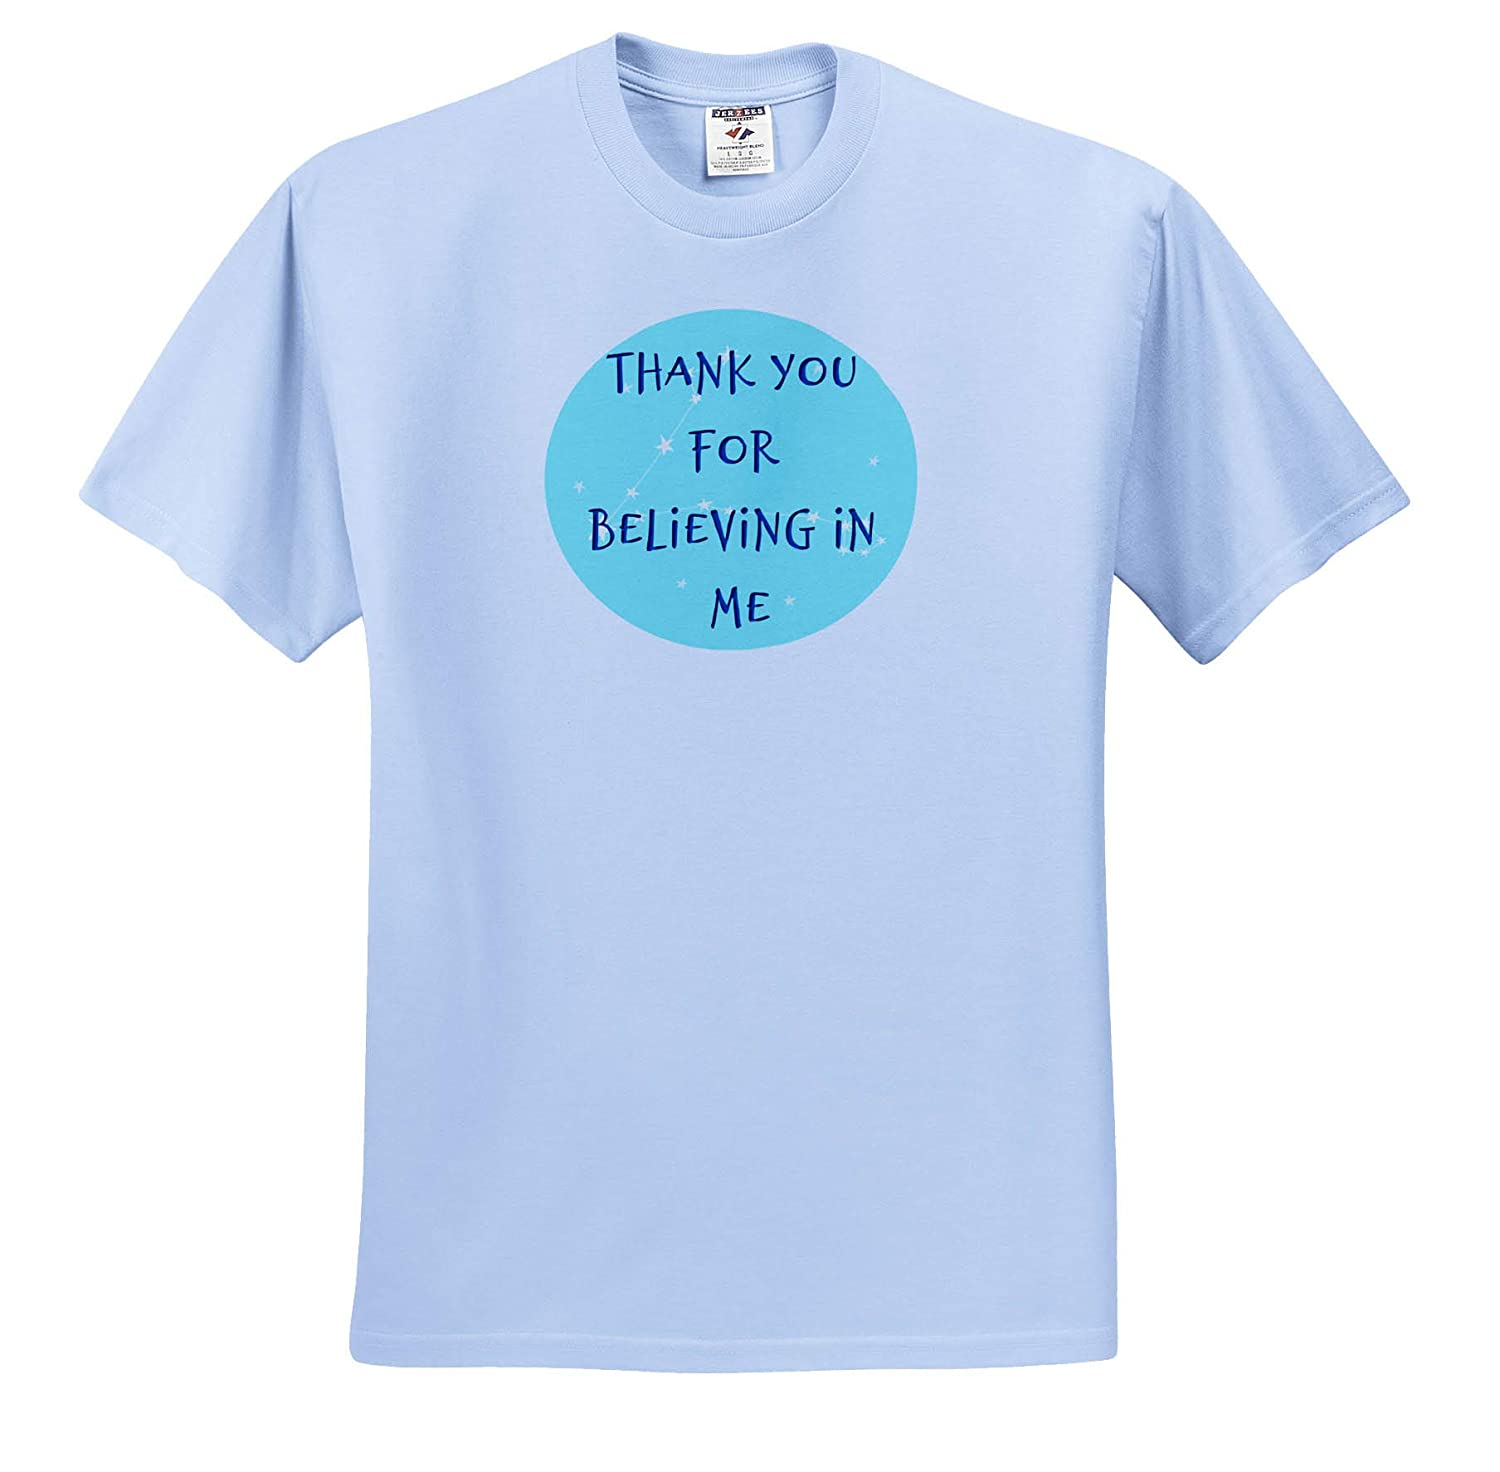 Adult T-Shirt XL Image of Thank You for Believing in Me ts/_317460 3dRose Carrie Merchant Image Quote